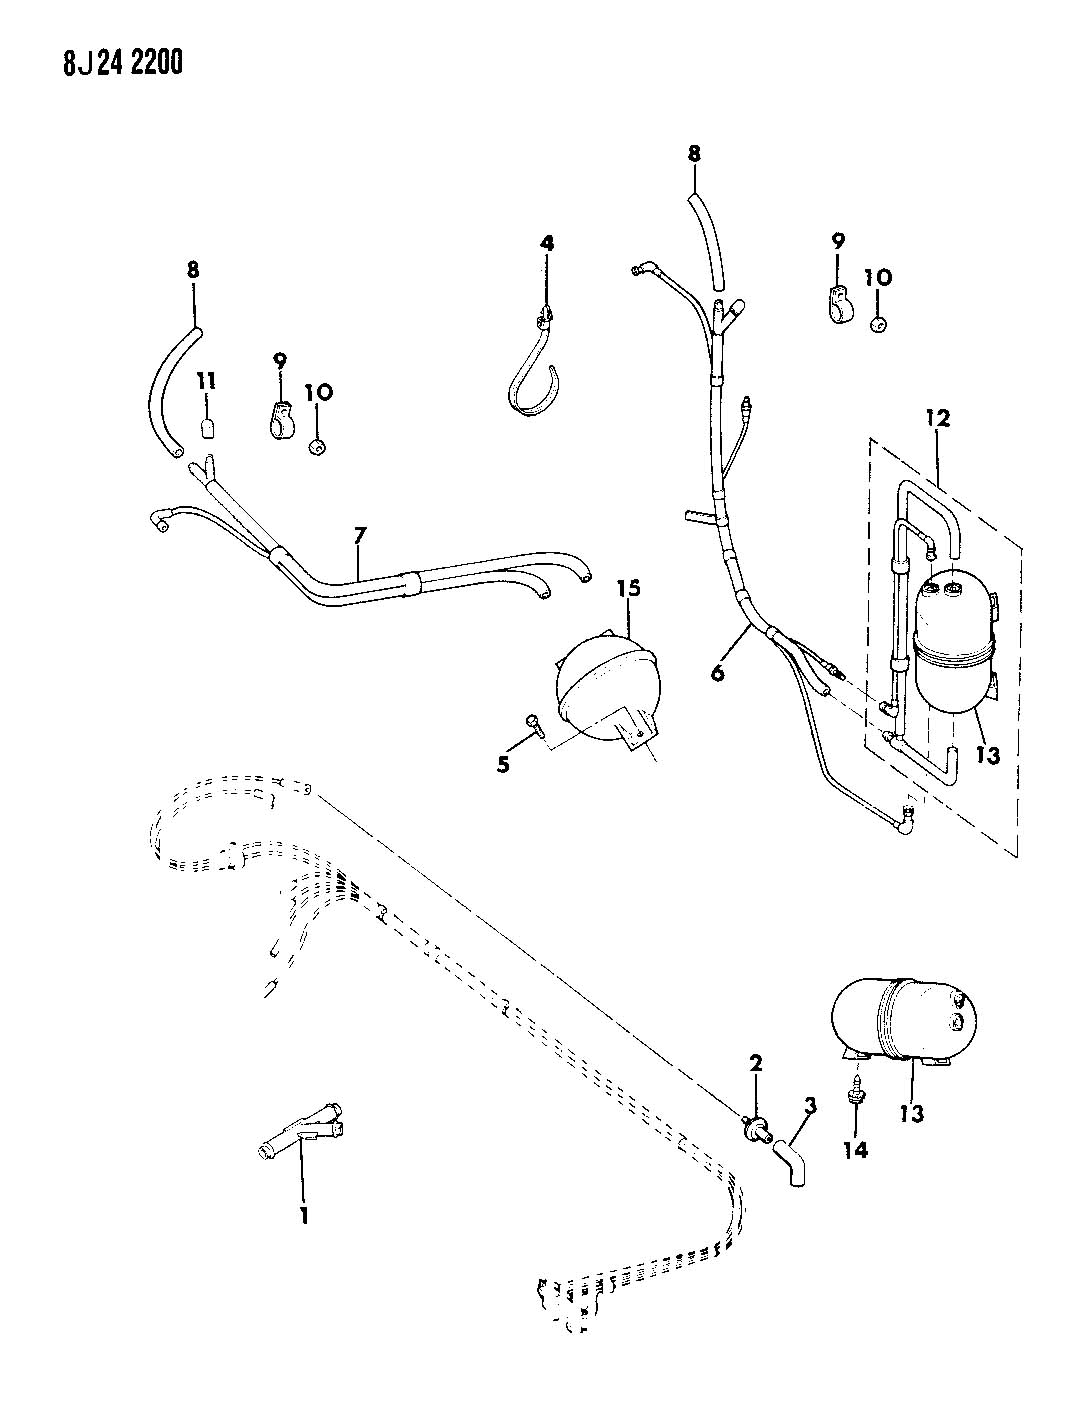 1987 Jeep LINES, HEATER AND AIR CONDITIONING VACUUM